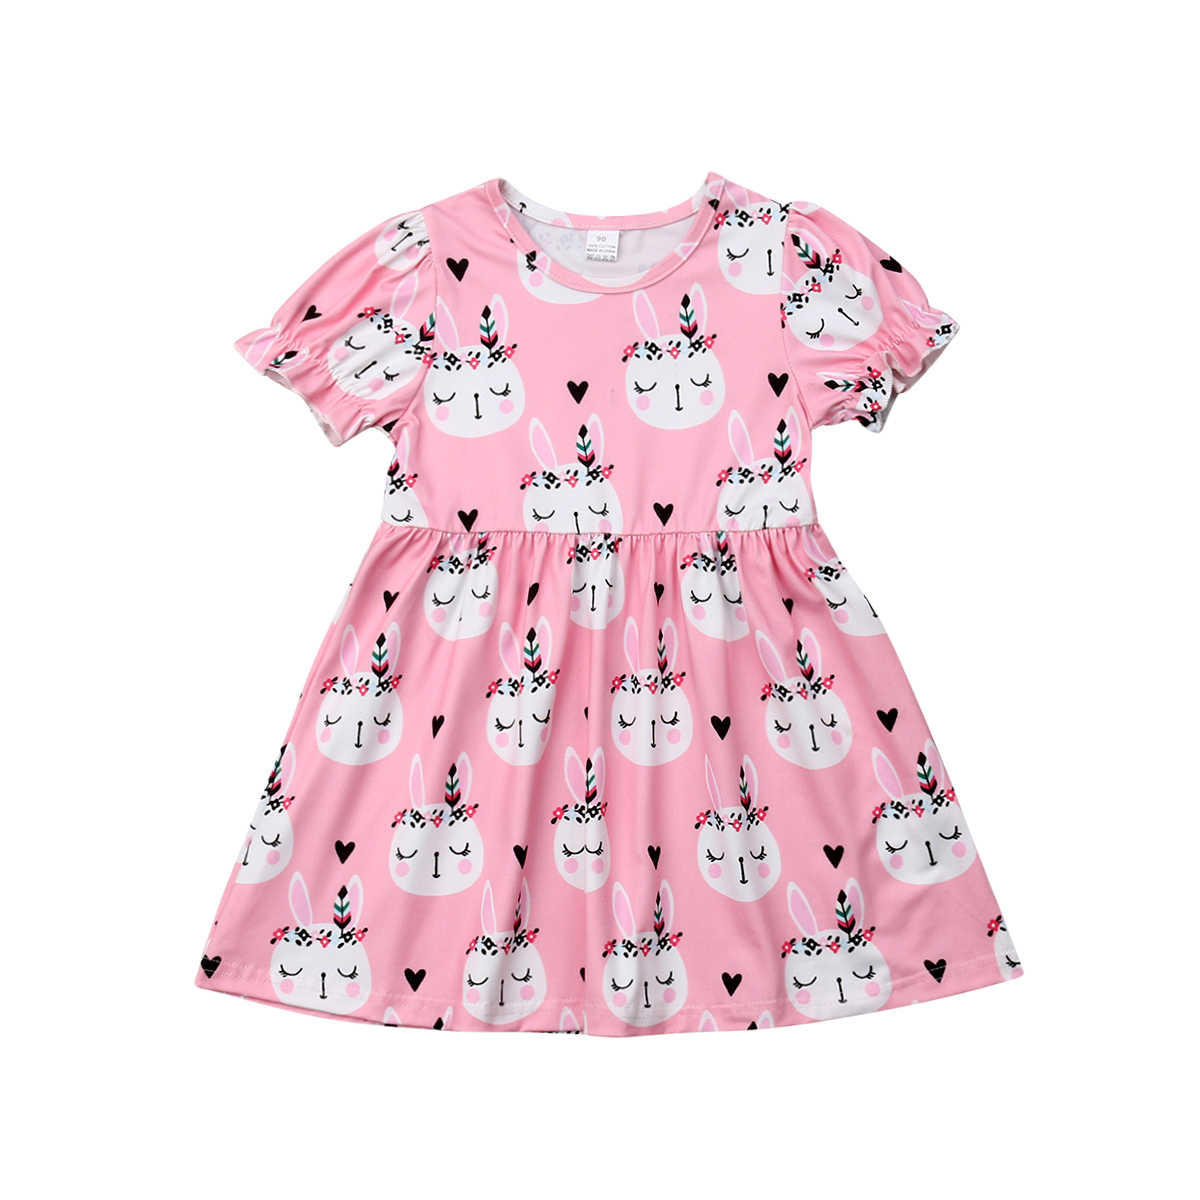 e5803d3ab72f Pudcoco 2019 Summer Pink Toddler Girls Easter Dress Princess Bunny Print  Floral Dresses Cute Clothes